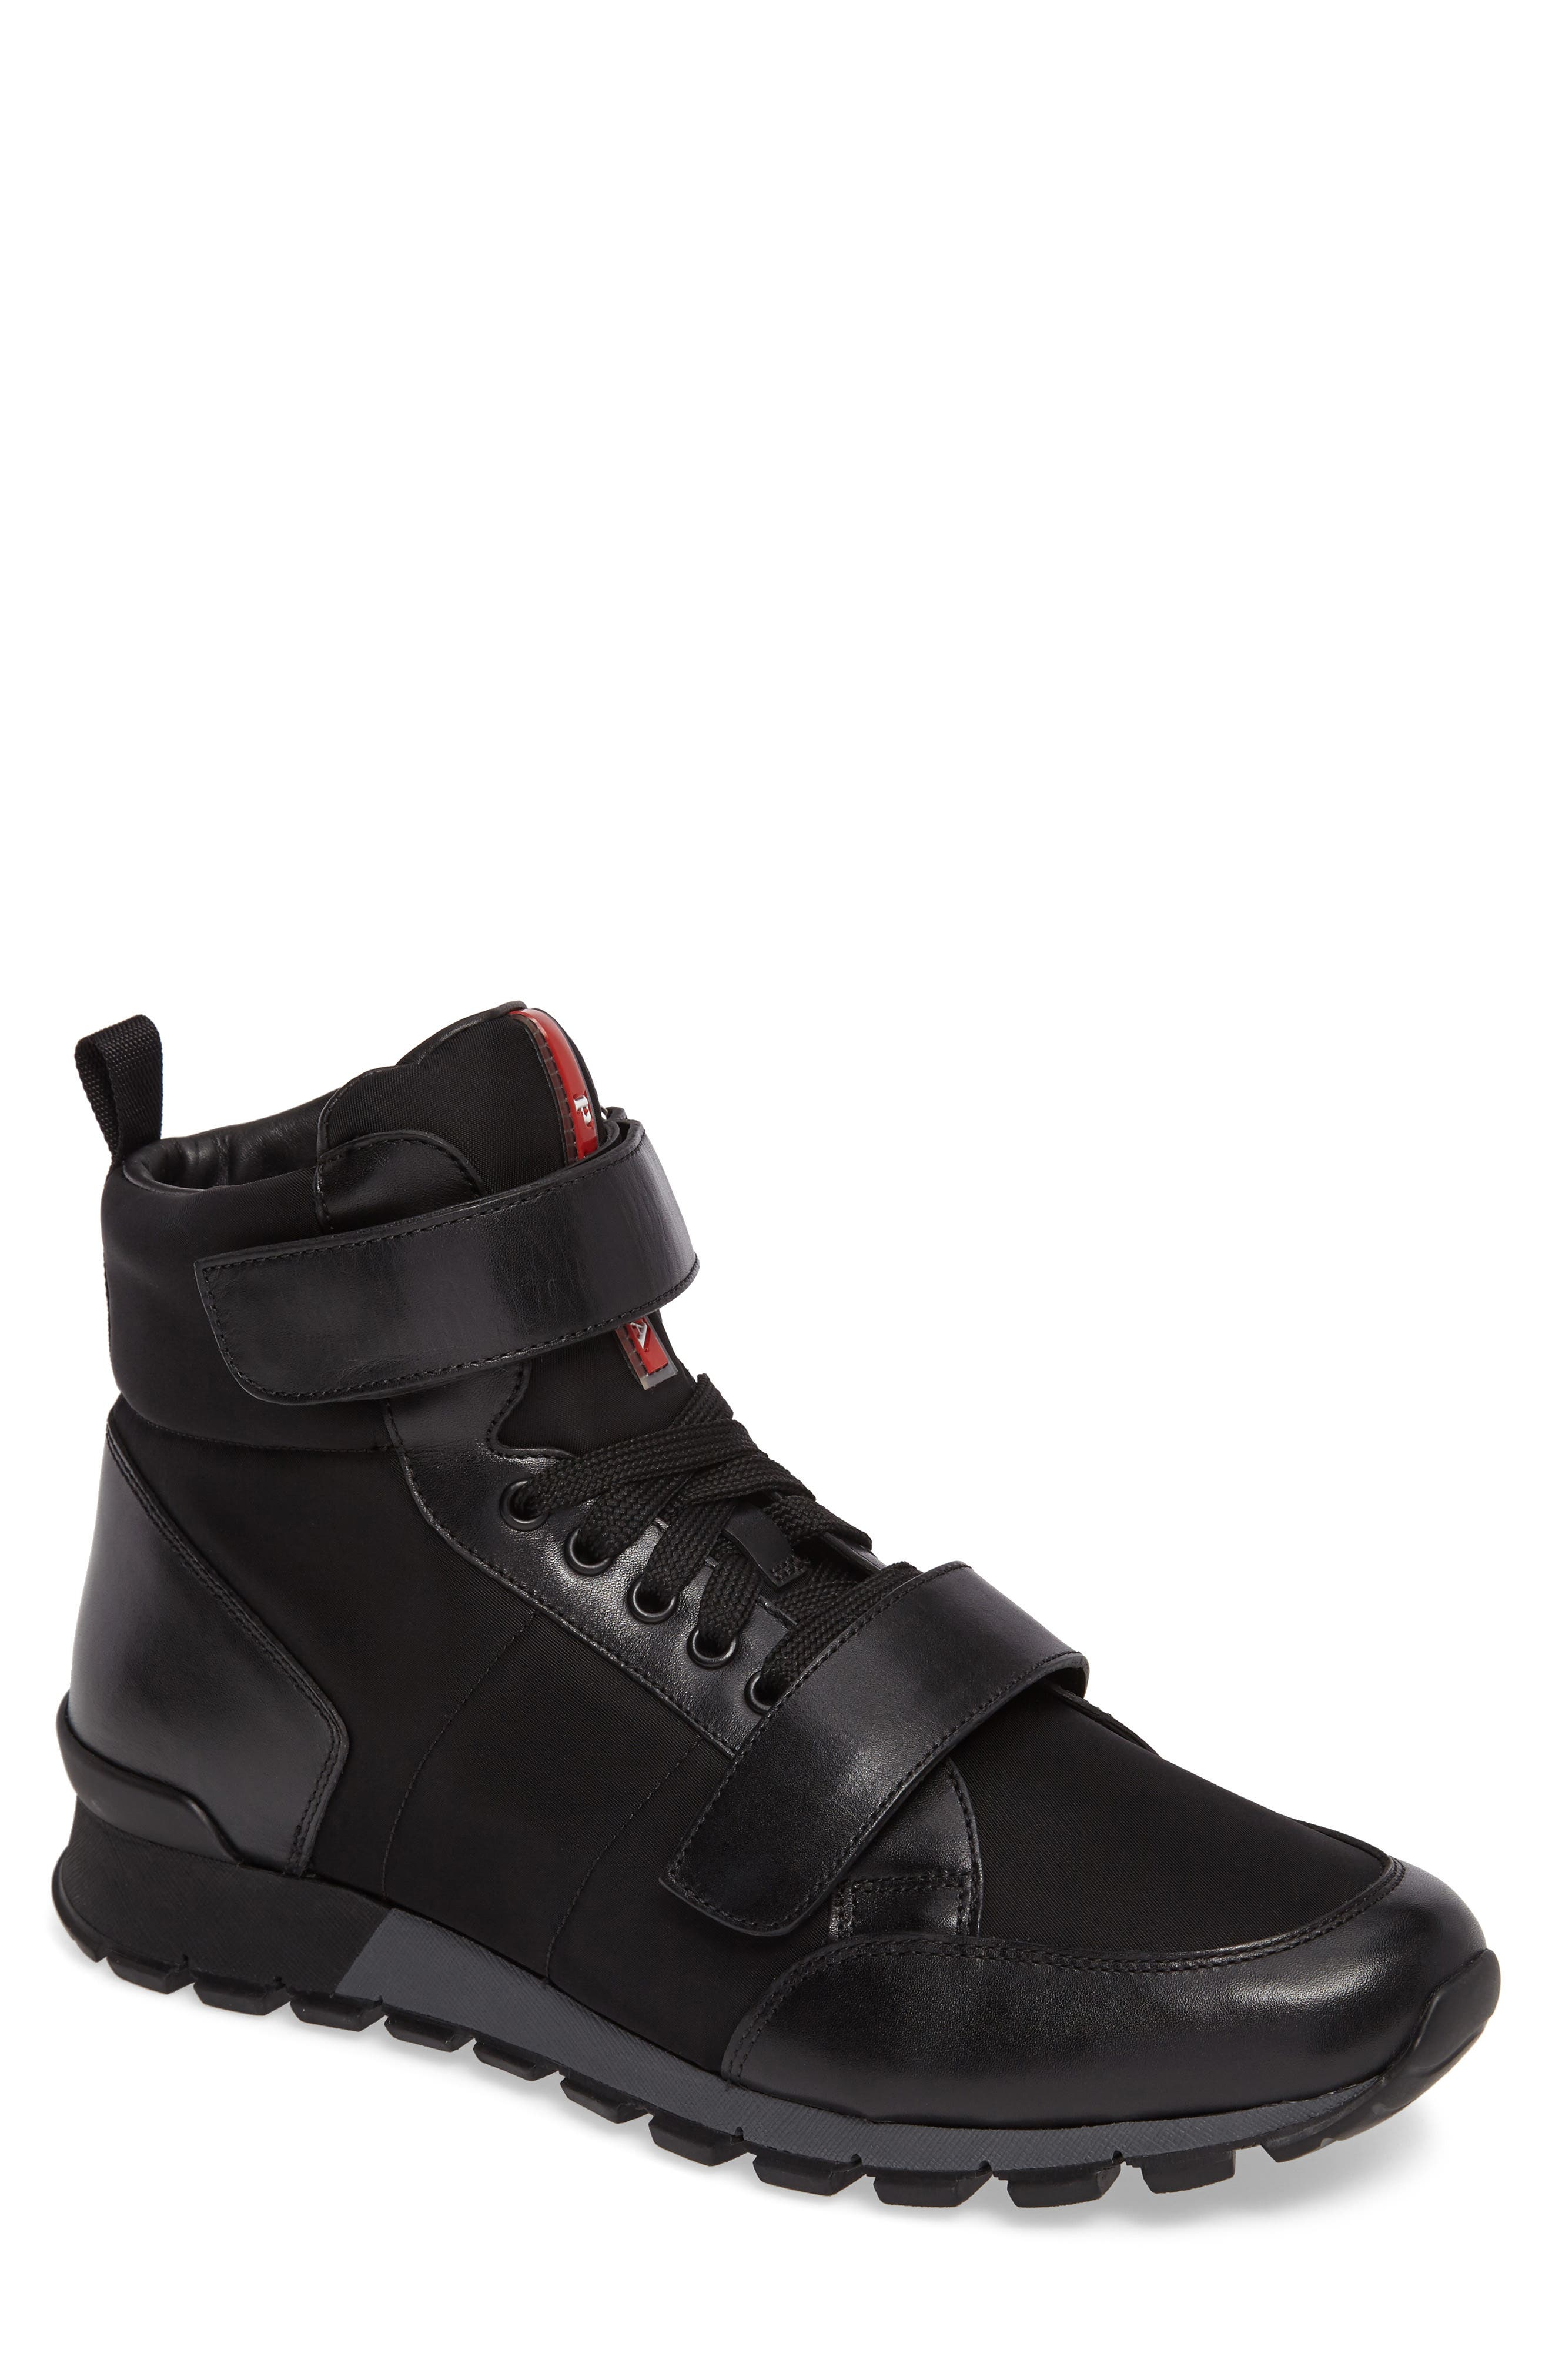 Prada High Top Sneaker (Men)